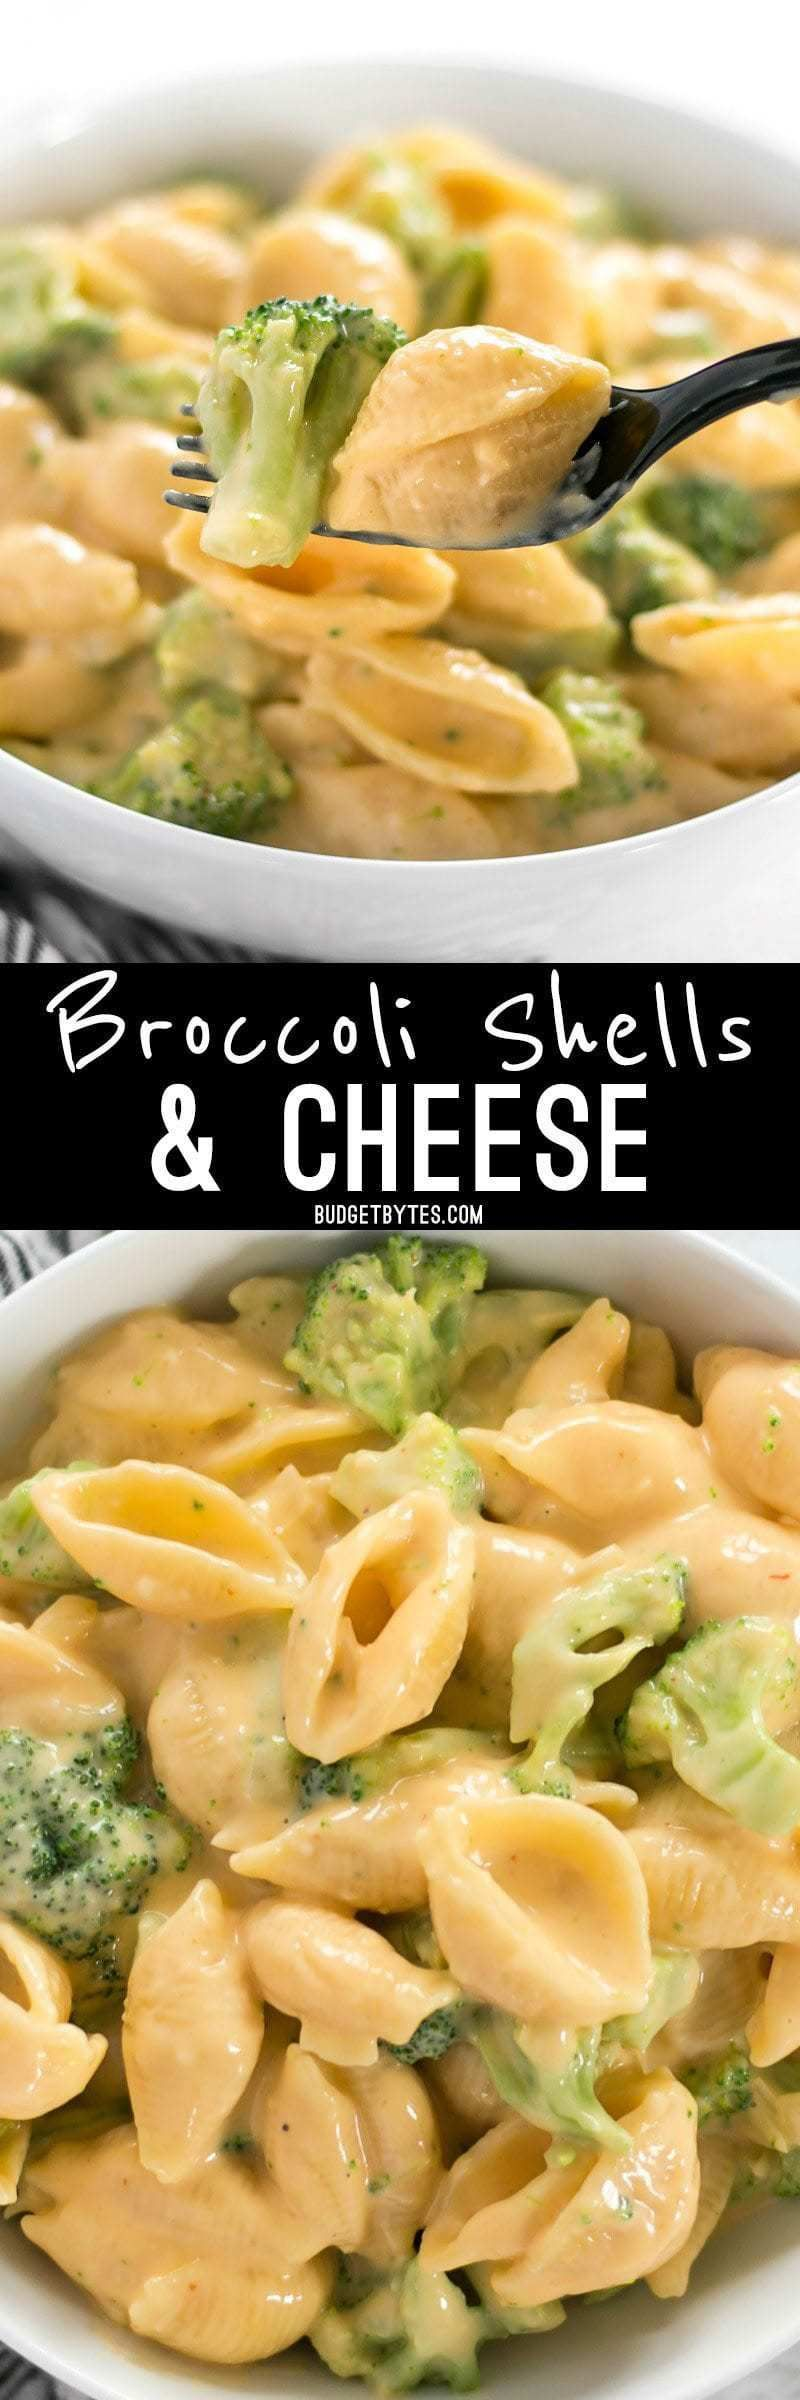 Shells n' Cheese Broccoli shells n' cheese is a classic American dish that goes well along side any meal, or as a hearty side dish. 100% real, 100% homemade. Broccoli shells n' cheese is a classic American dish that goes well along side any meal, or as a hearty side dish. 100% real, 100% homemade.